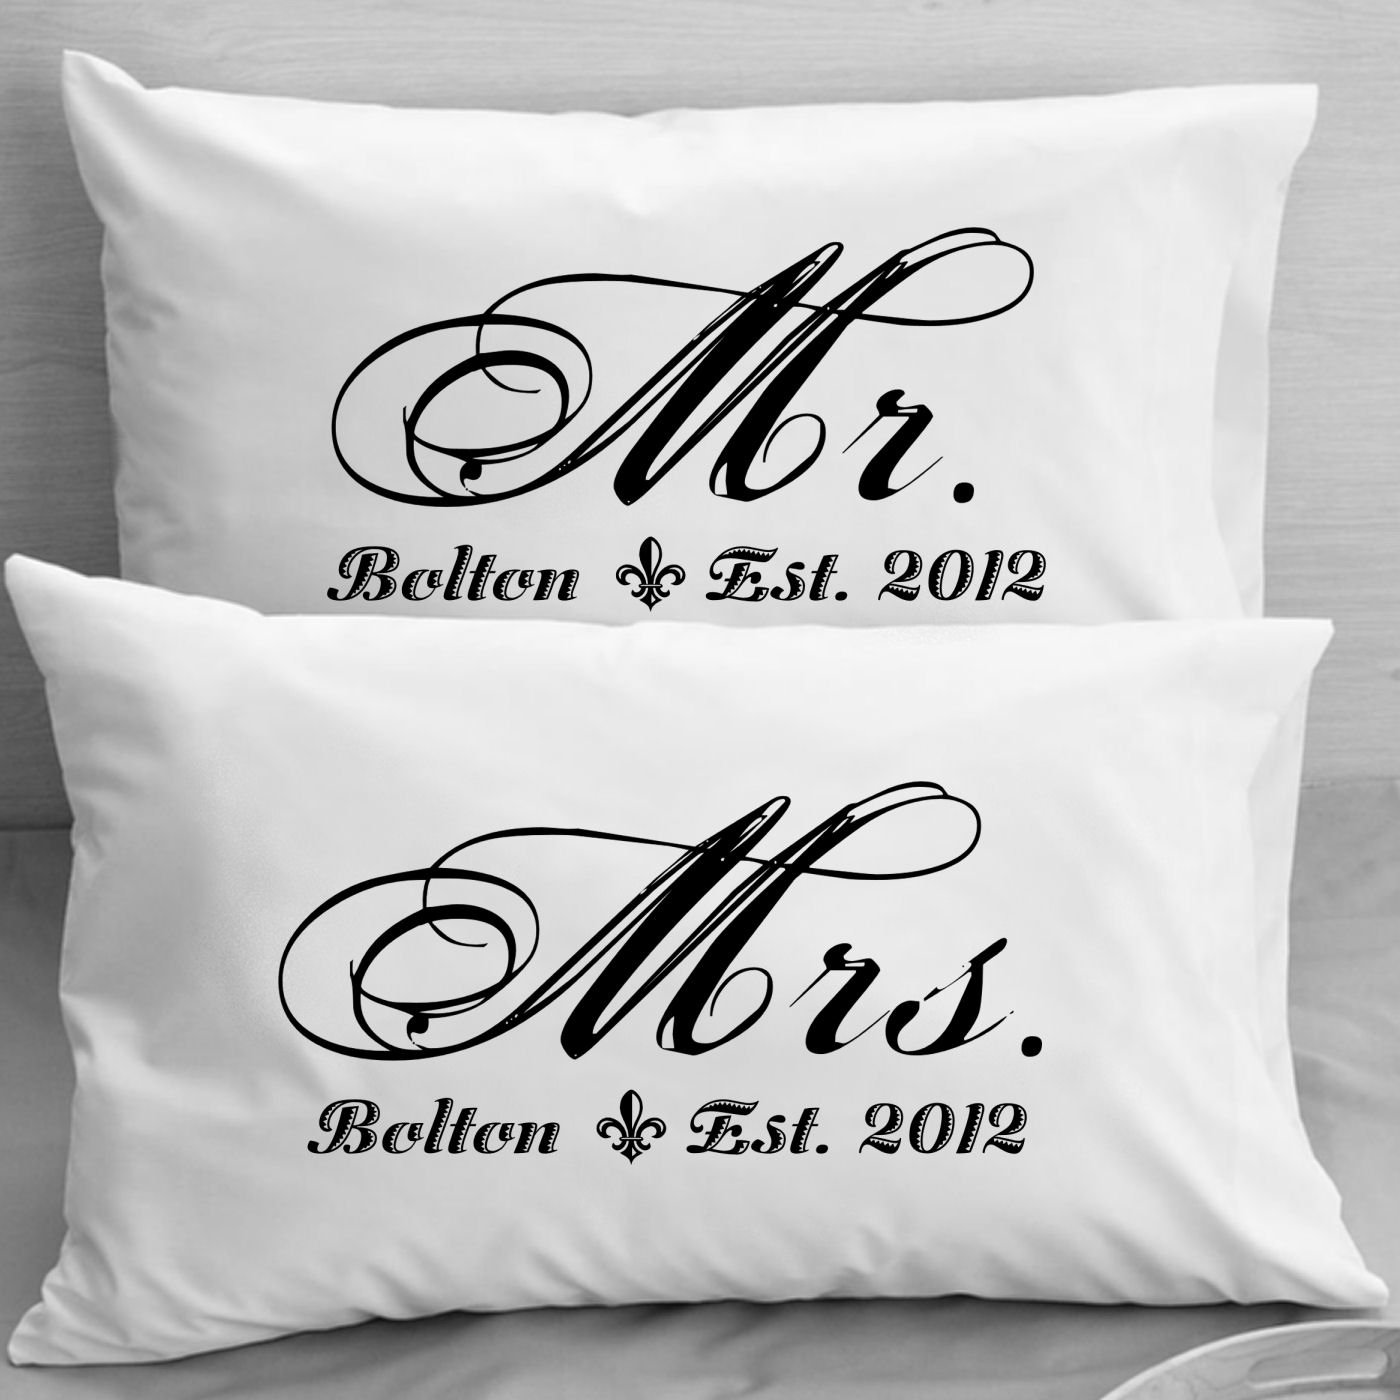 Mr And MRS Pillowcases Personalized Wedding Gift Anniversary Romantic Idea For Couples Amazoncouk Kitchen Home